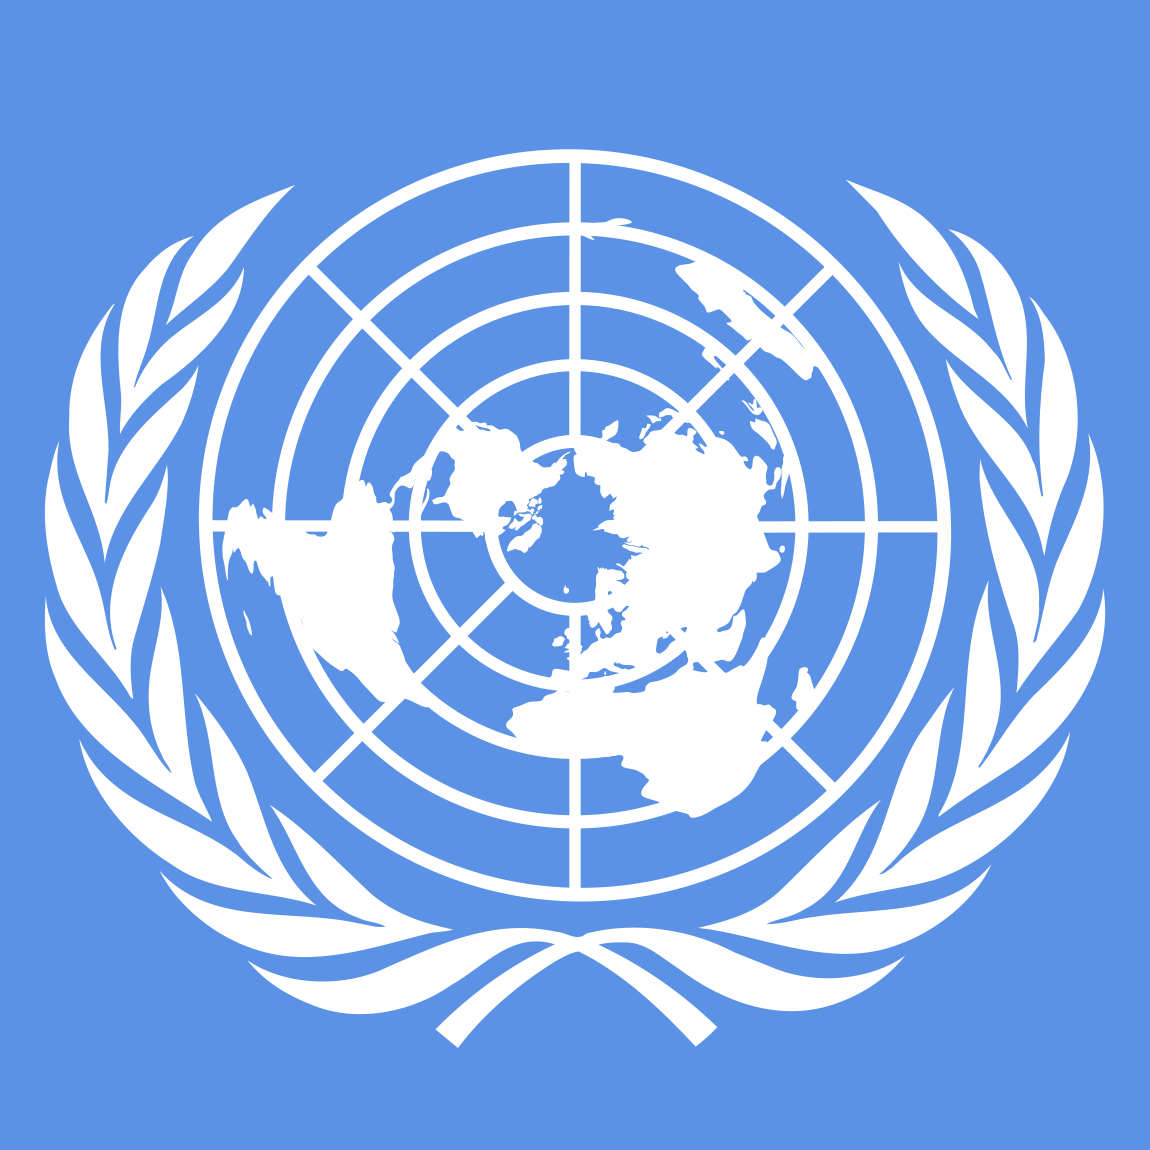 Un flag square UN hopes employ anti terrorism surveillence of internet